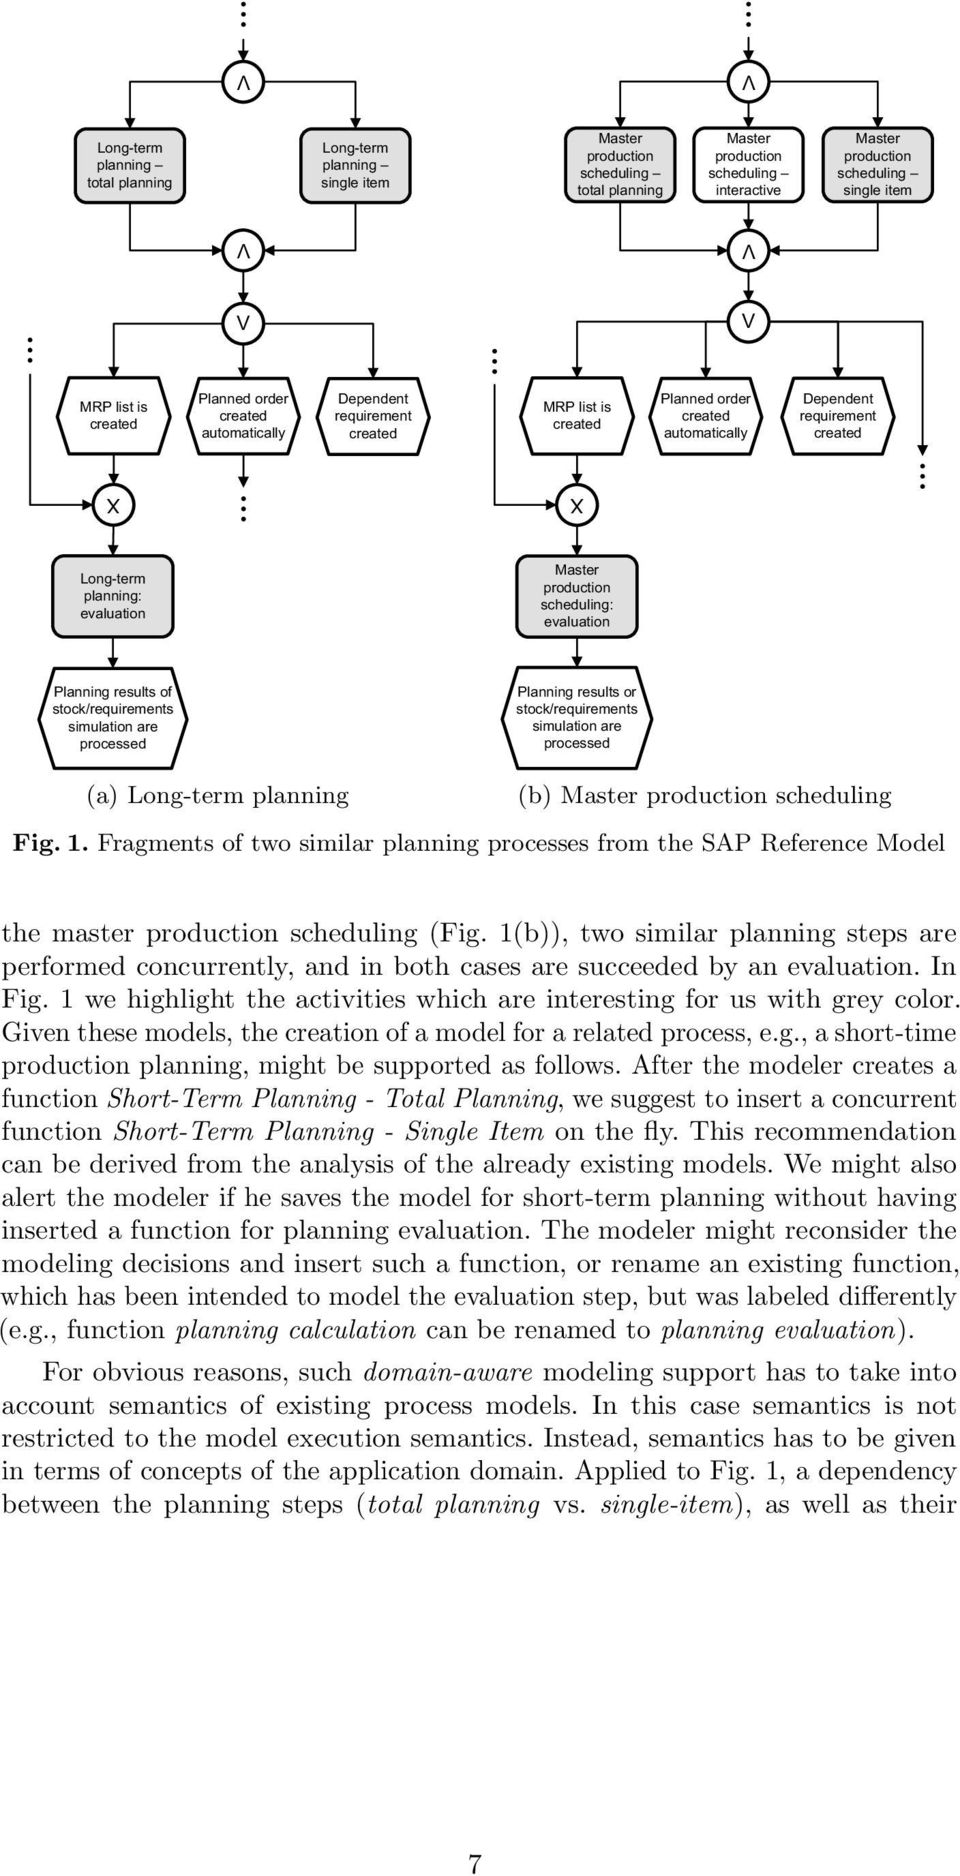 planning: evaluation Master production scheduling: evaluation Planning results of stock/requirements simulation are processed Planning results or stock/requirements simulation are processed (a)